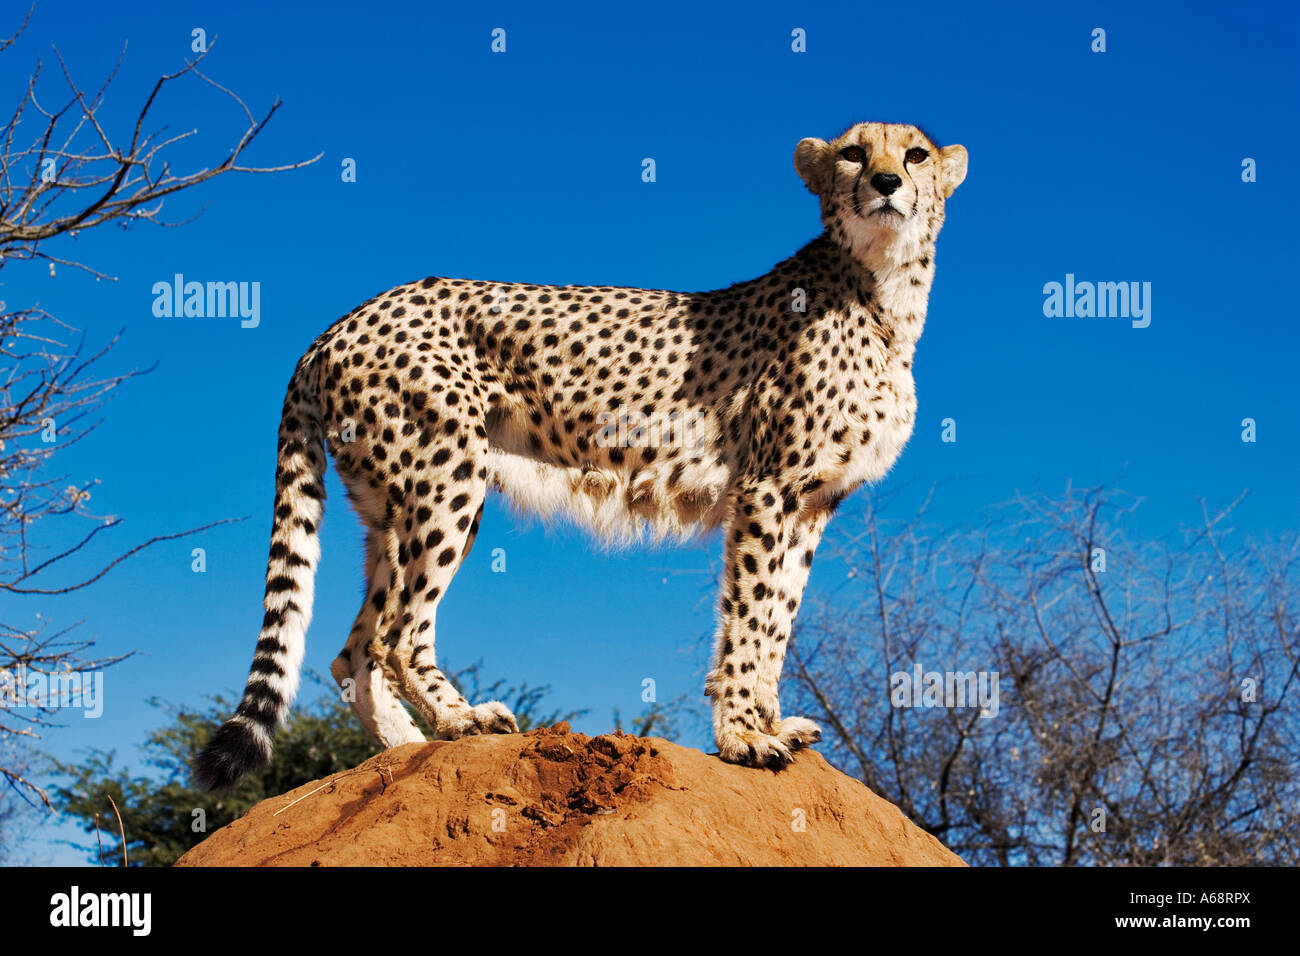 Cheetah Acinonyx jubatus using termite mound as look out point. Namibia - Stock Image